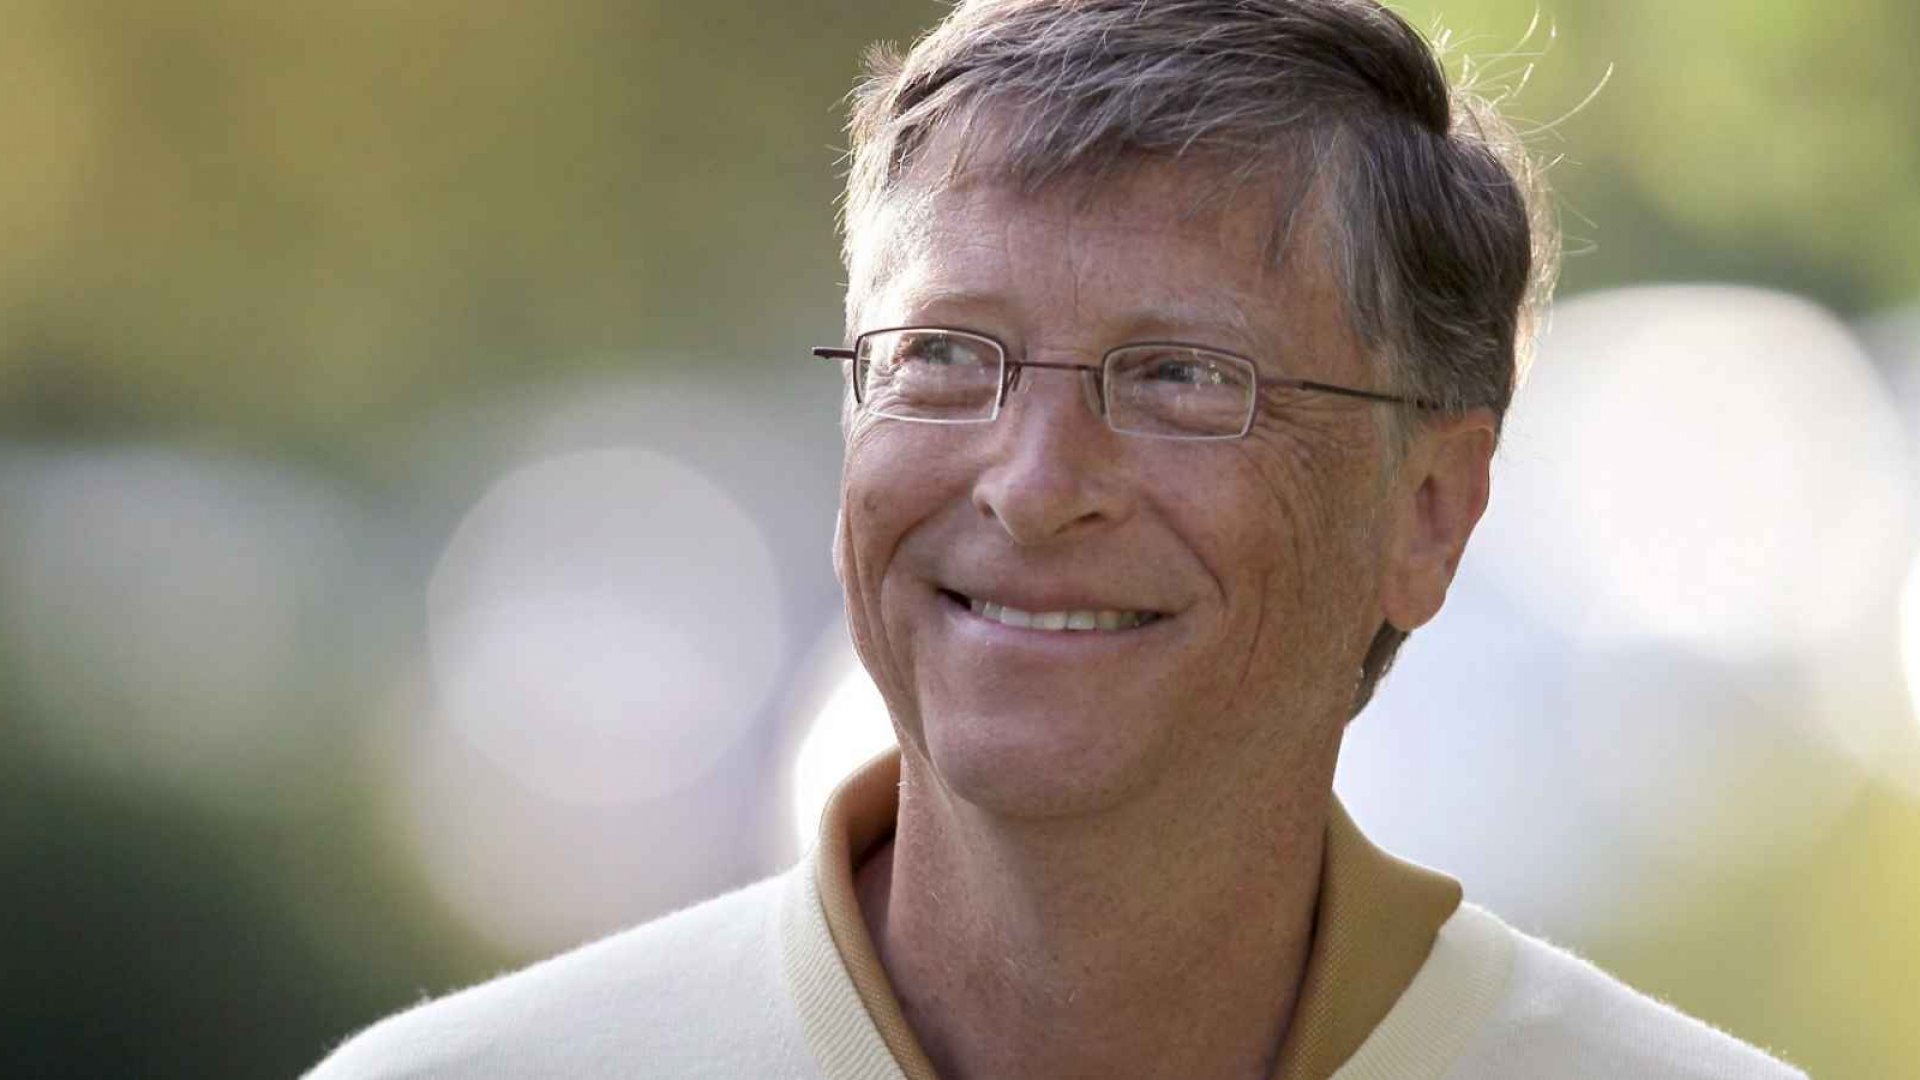 25 Billionaire Quotes About Success in Business and Life